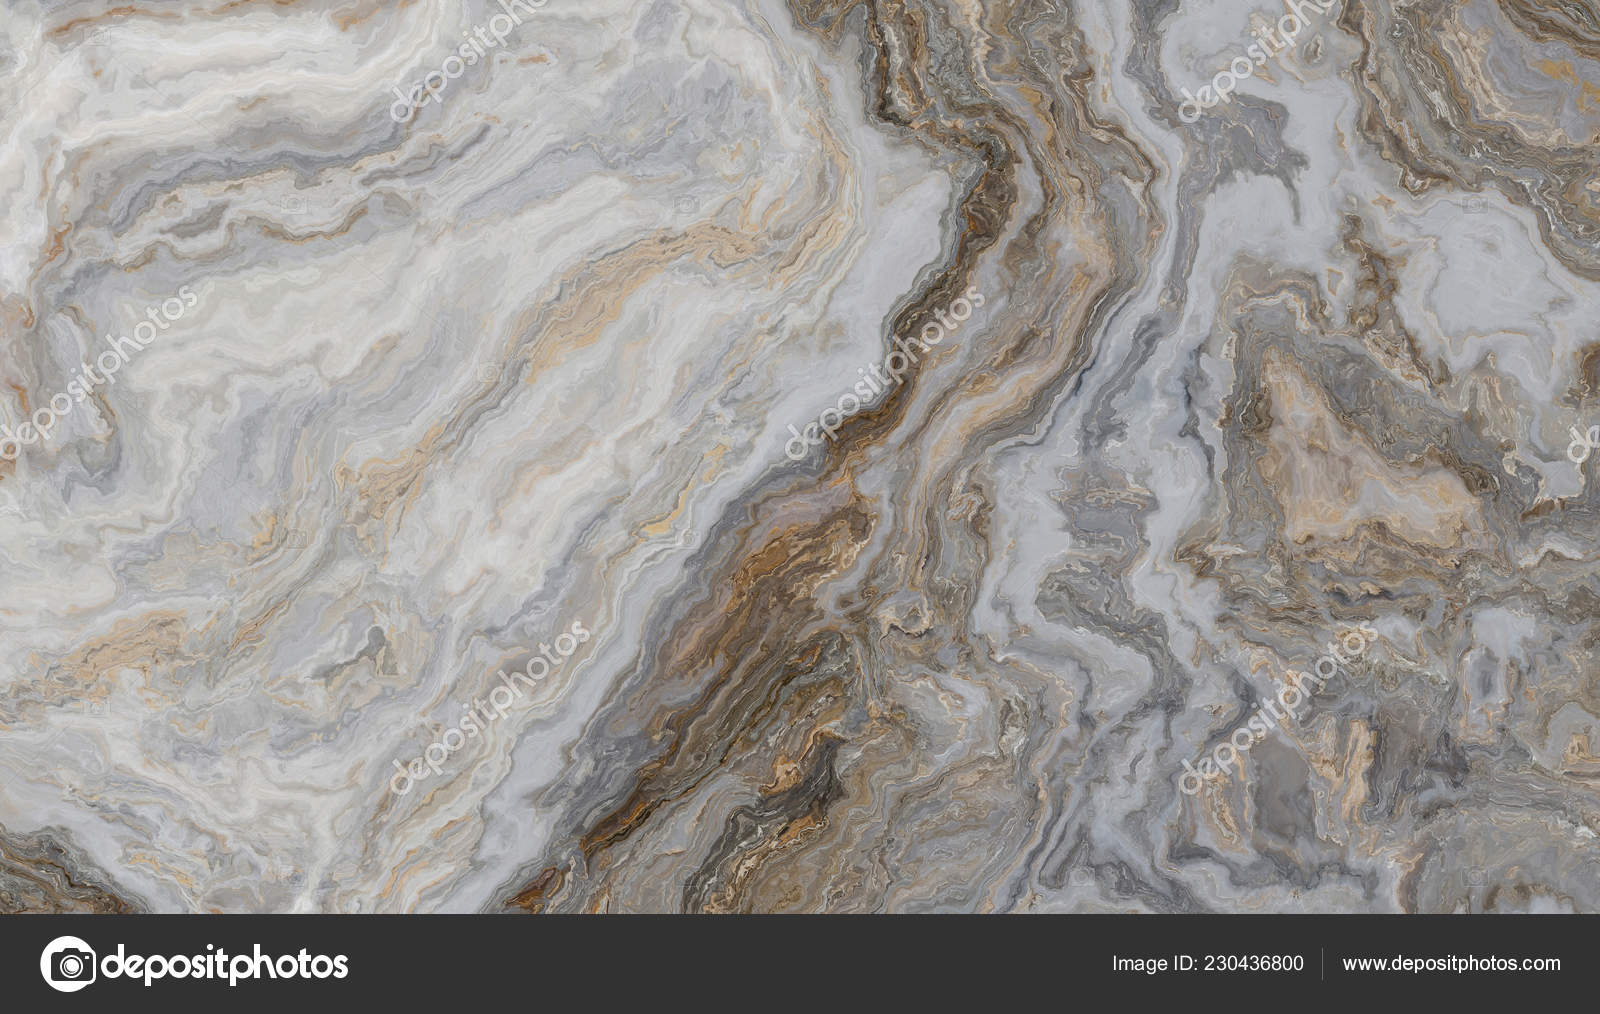 Marble With Gold Veins White Marble Pattern Curly Grey Gold Veins Abstract Texture Background Stock Photo C Aregfly 230436800